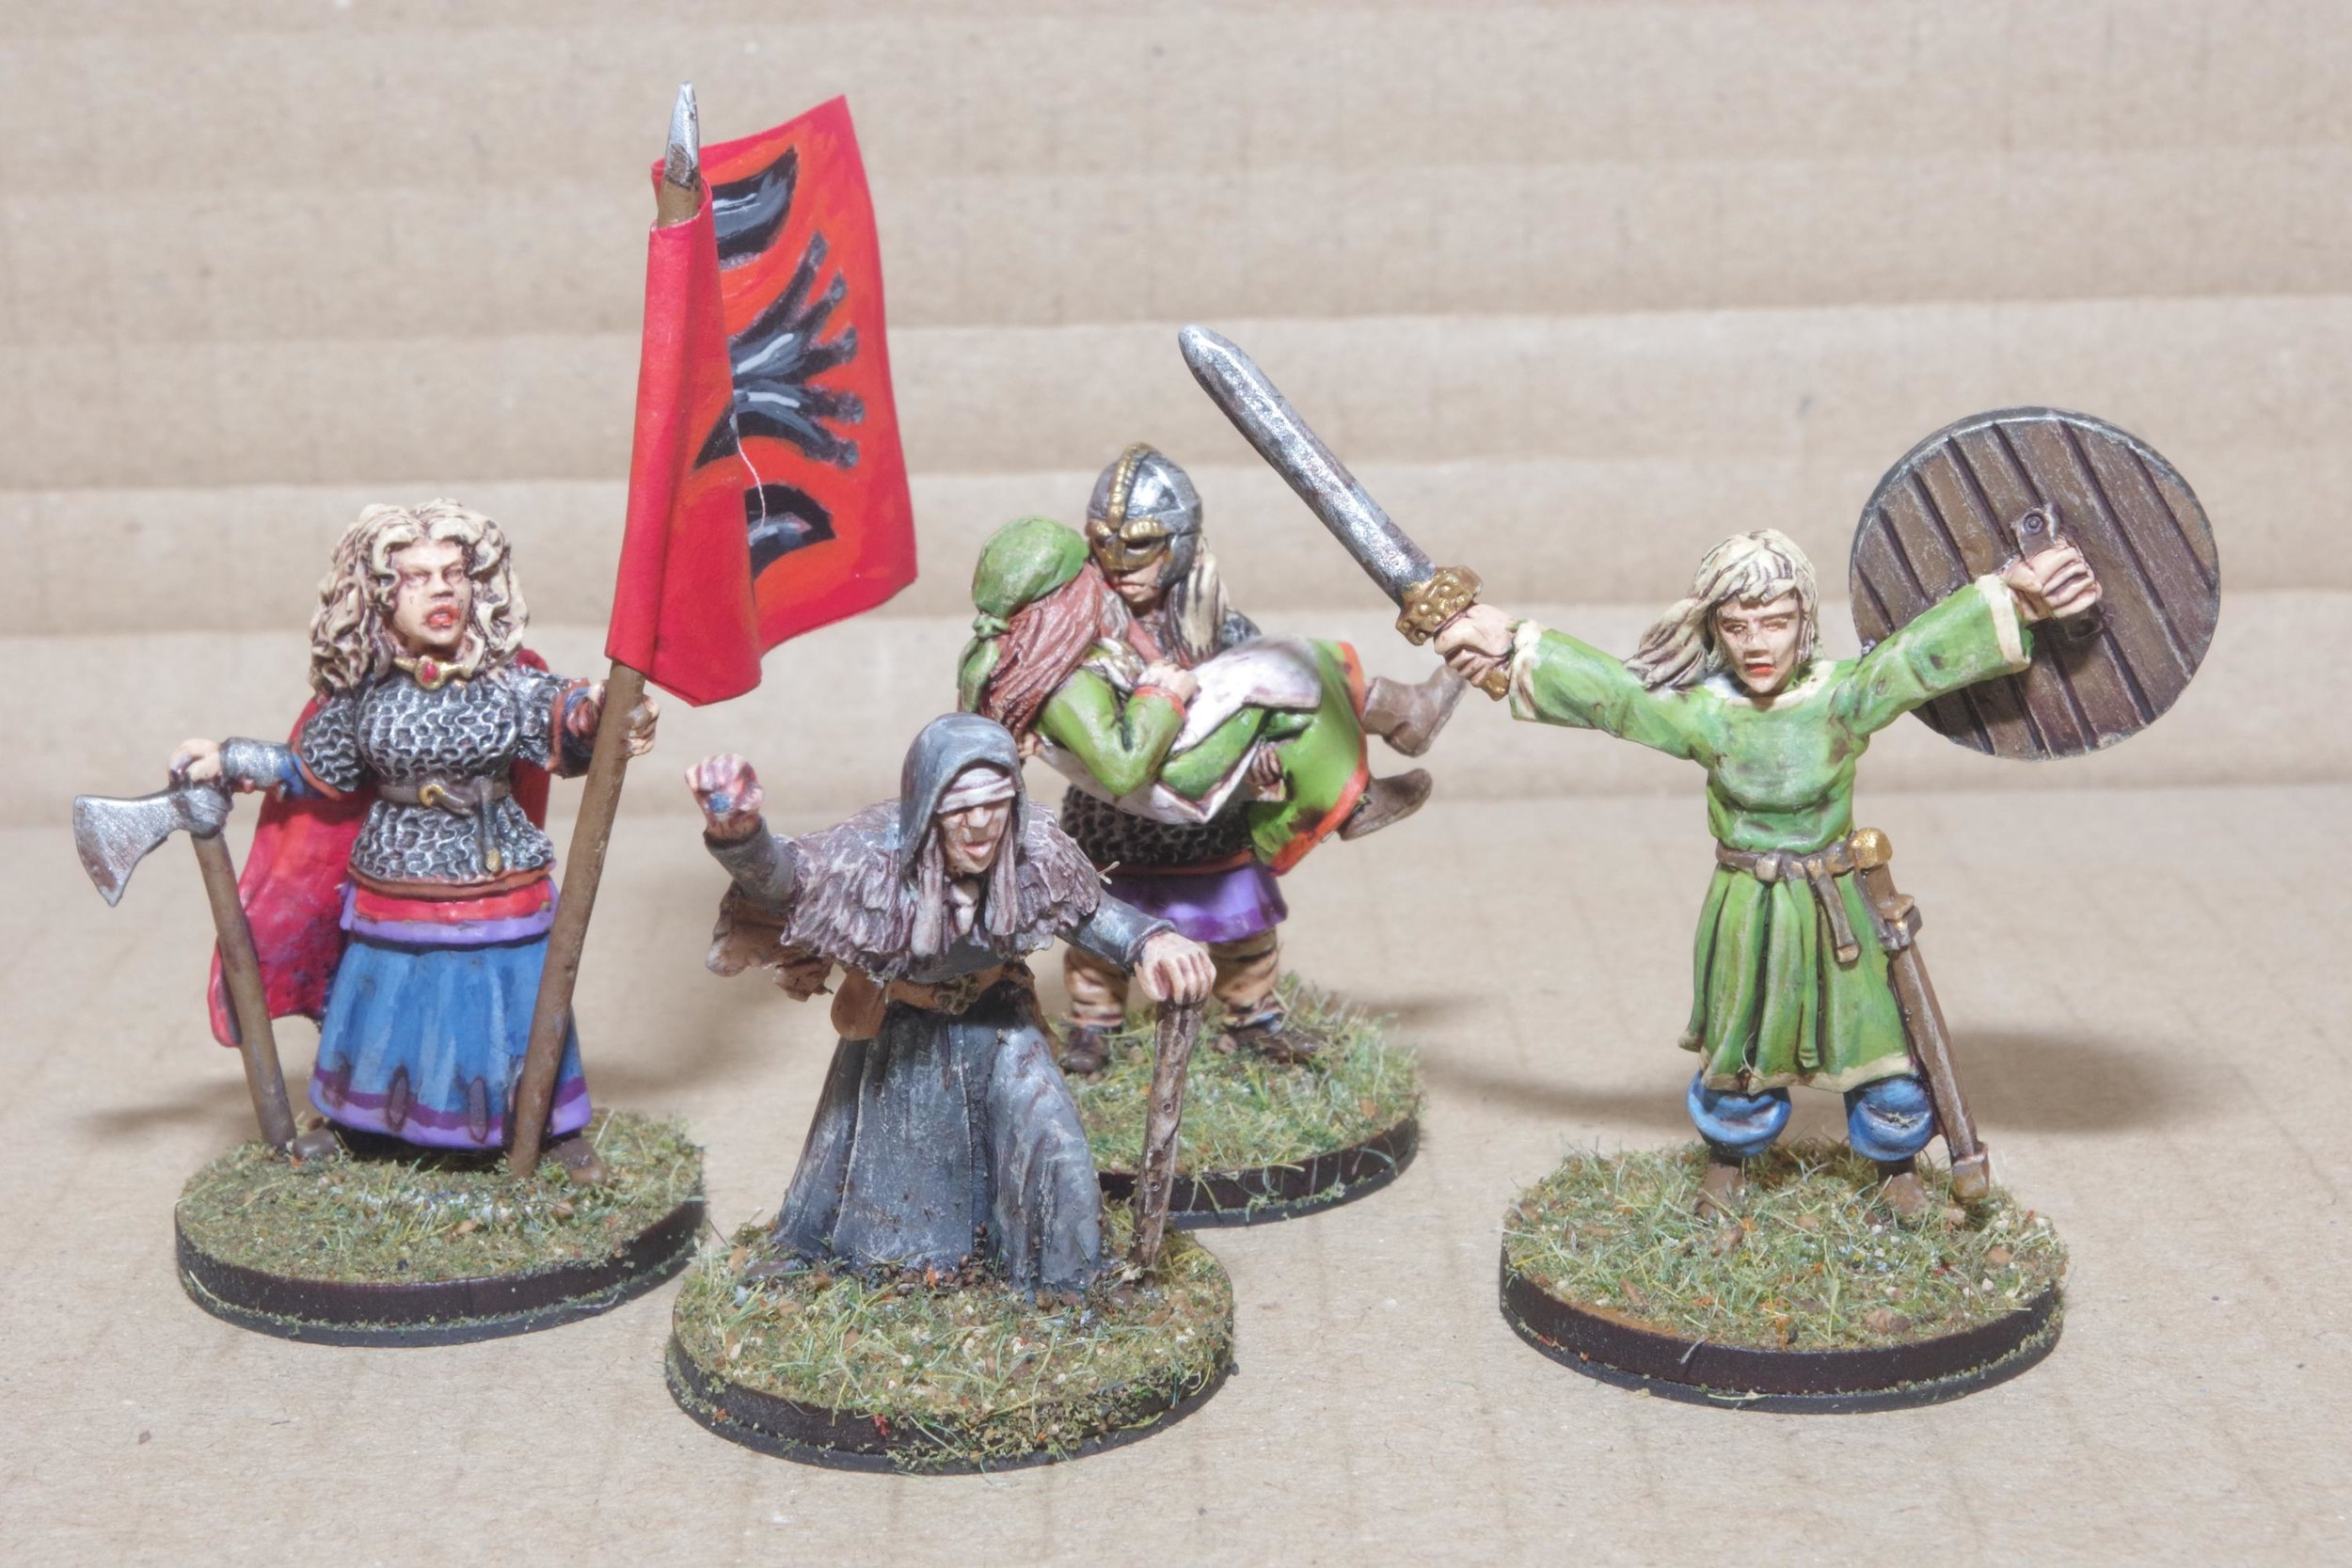 Shieldmaidens from Carole and some rather nice engineers/medics from The Hat